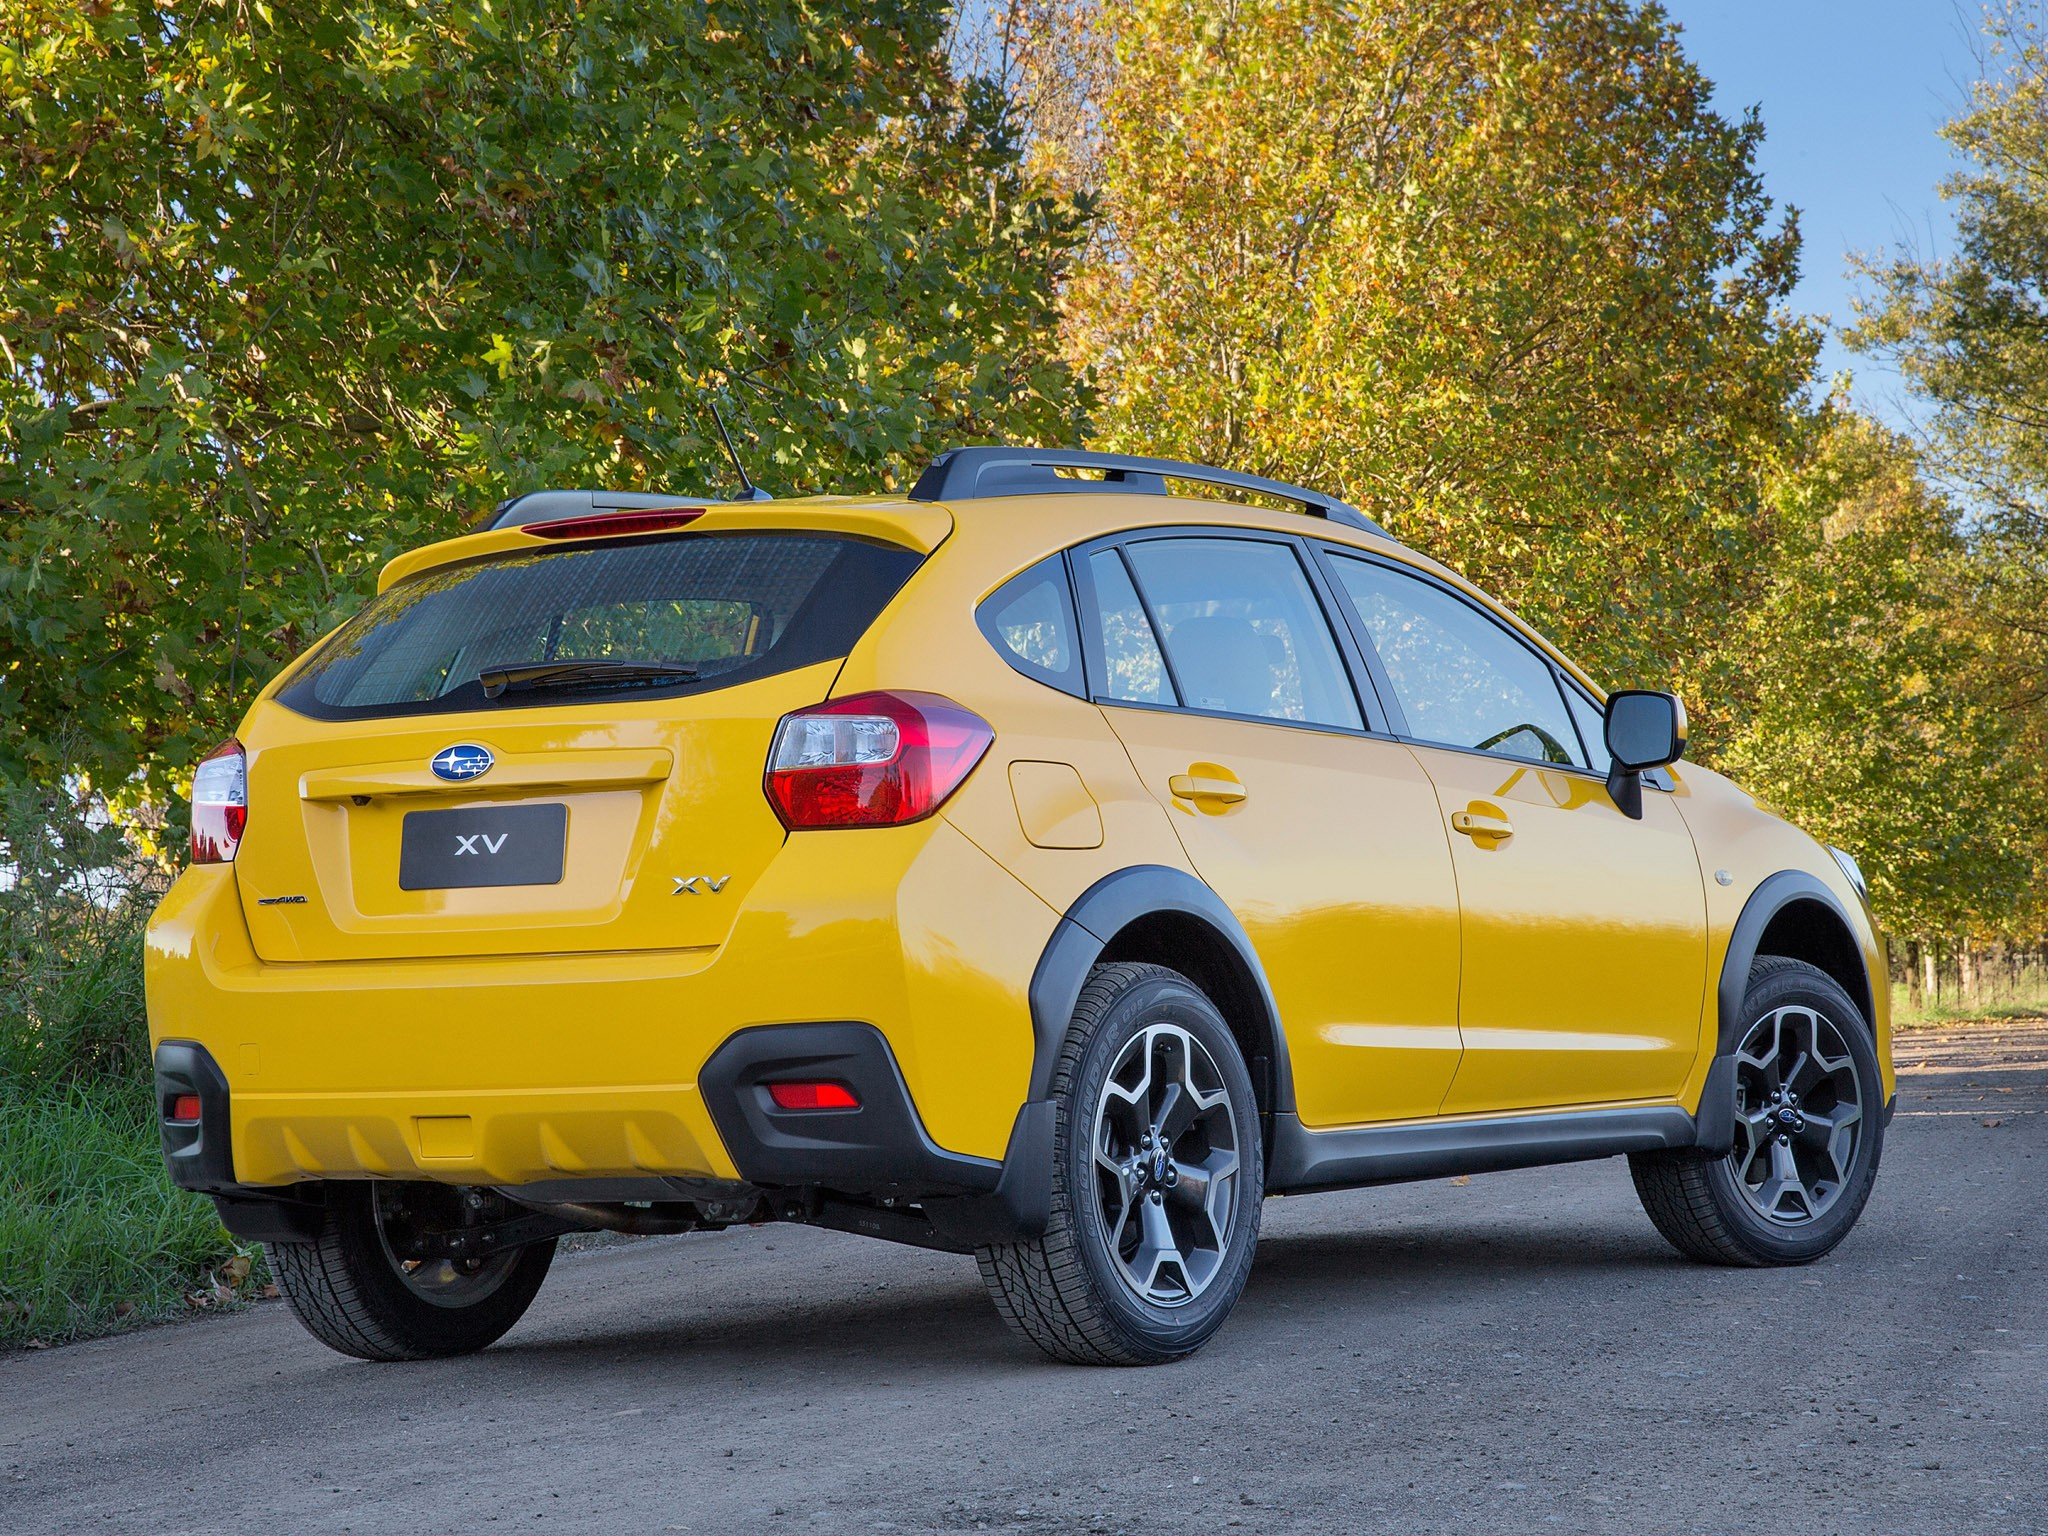 2015 Subaru XV Sunshine Yellow